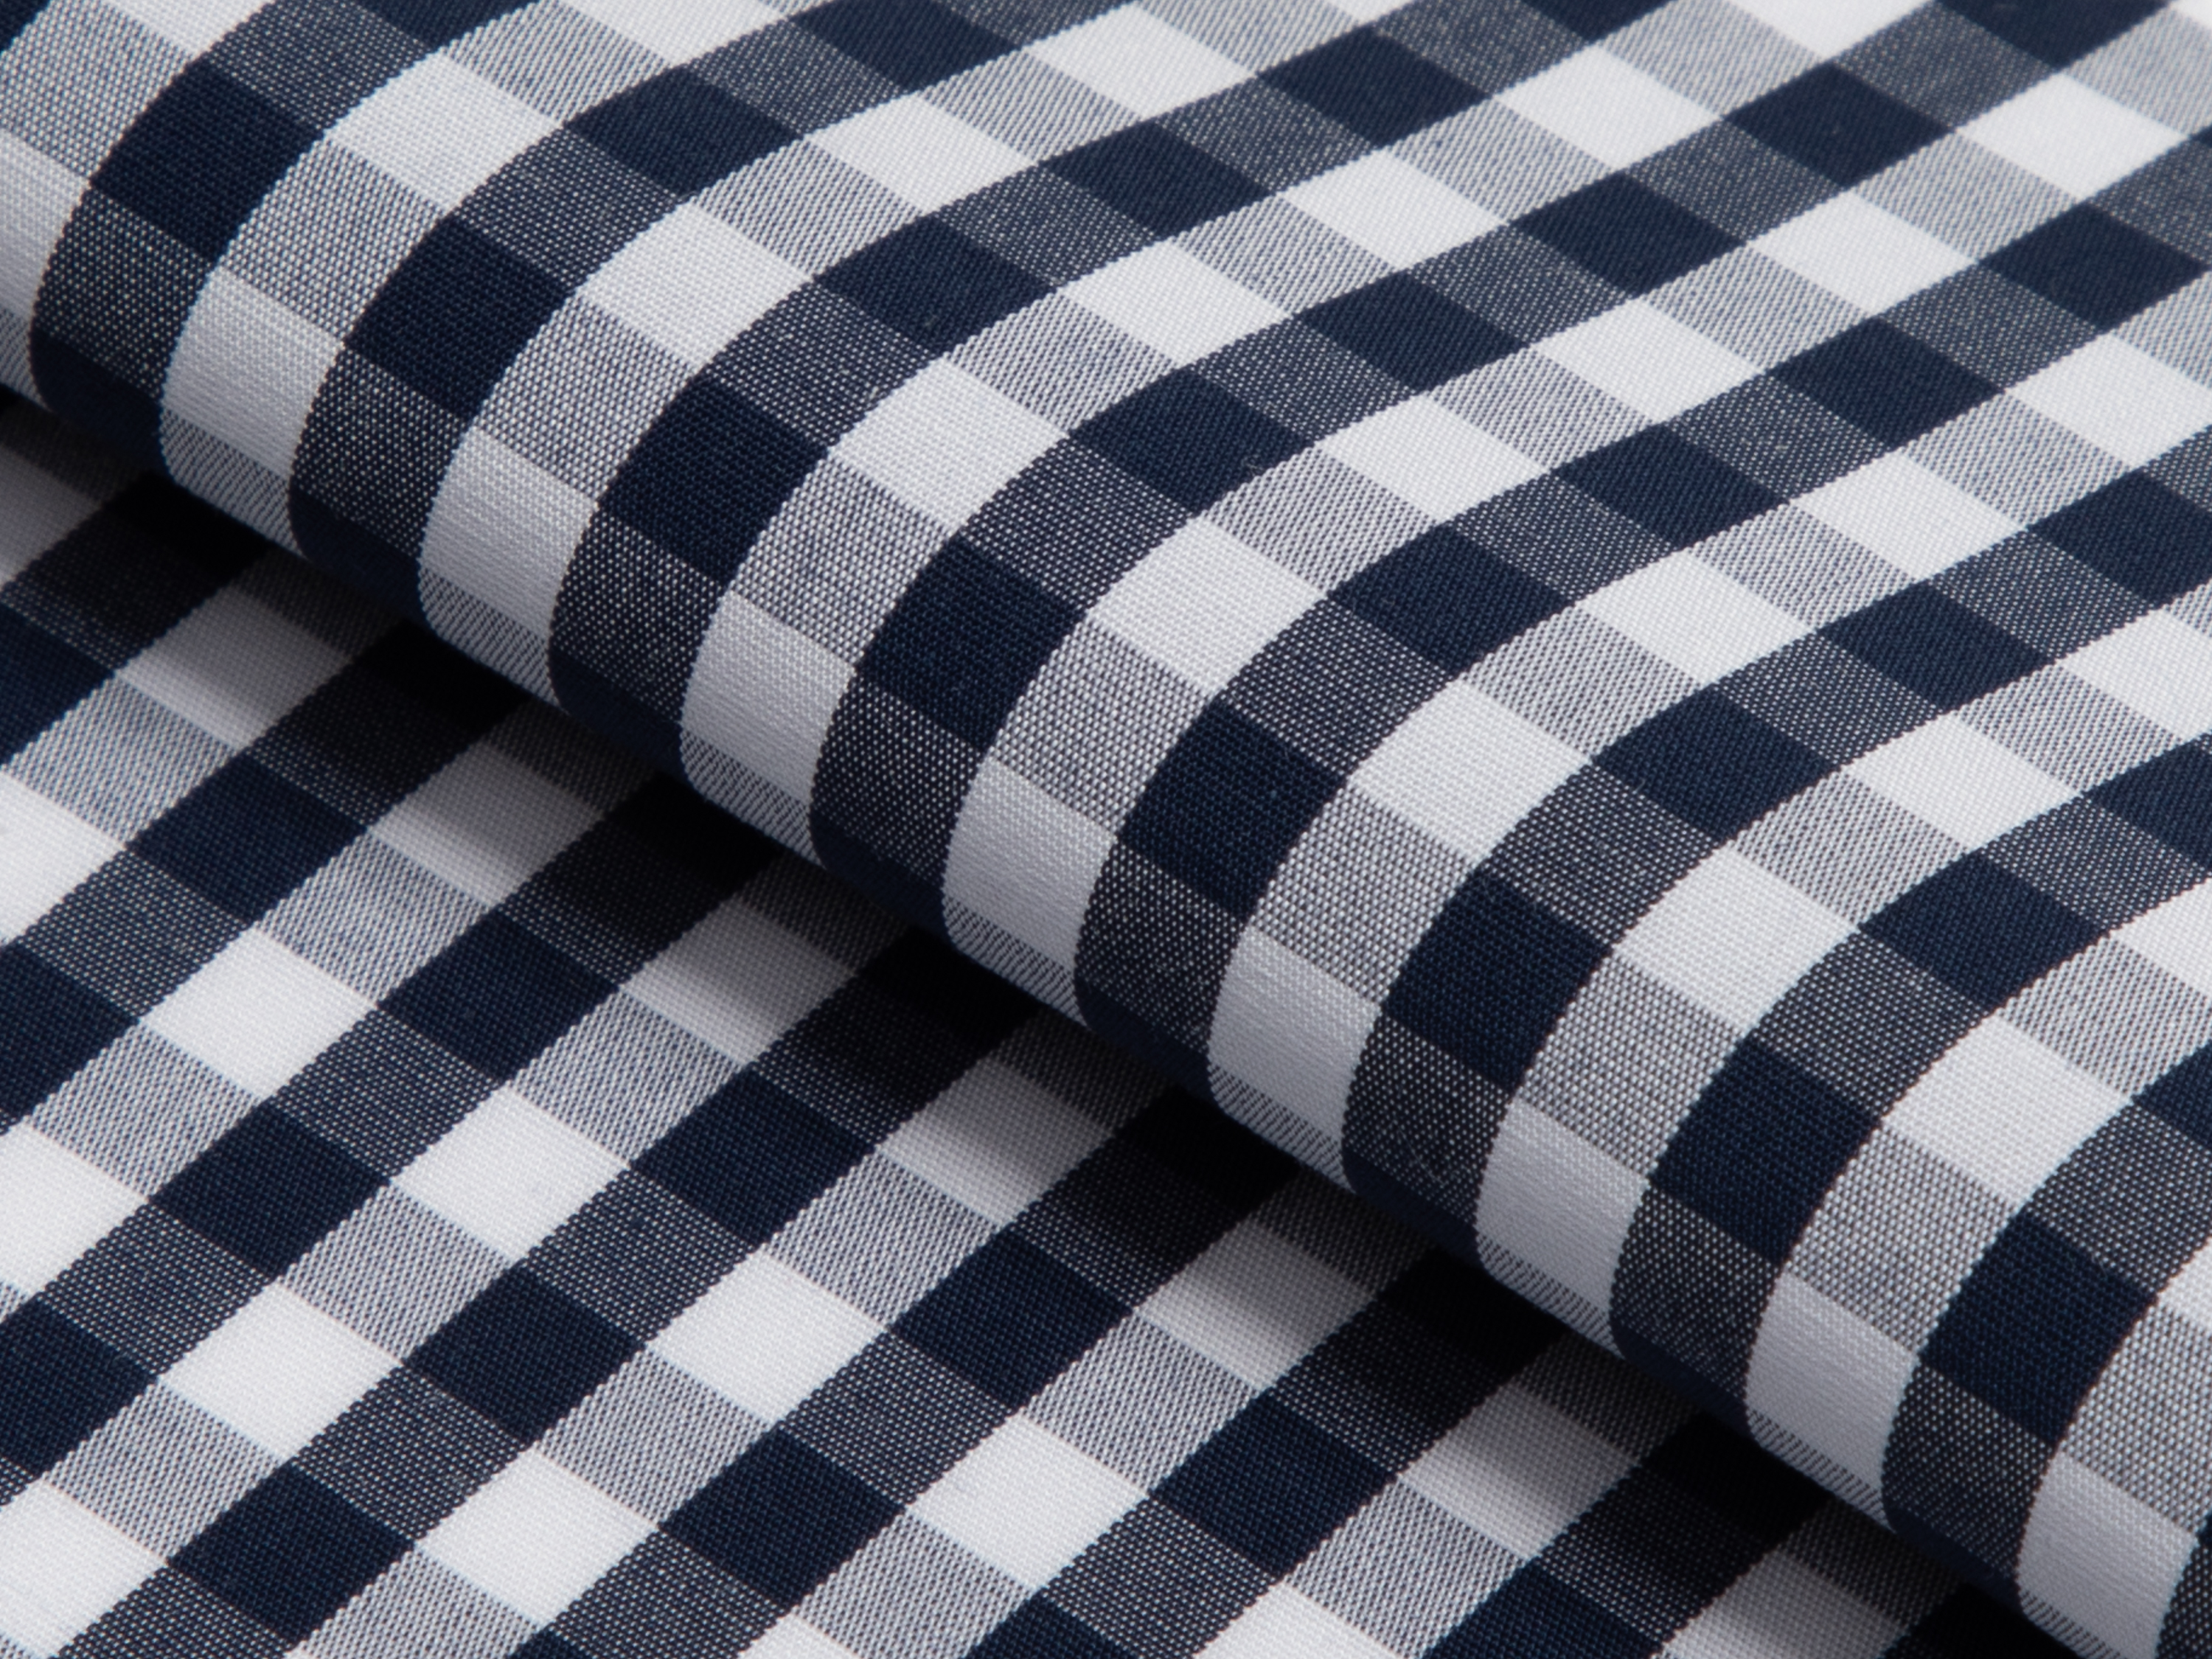 Buy tailor made shirts online - GINGHAM LUXURY (NEW) - Gingham Navy